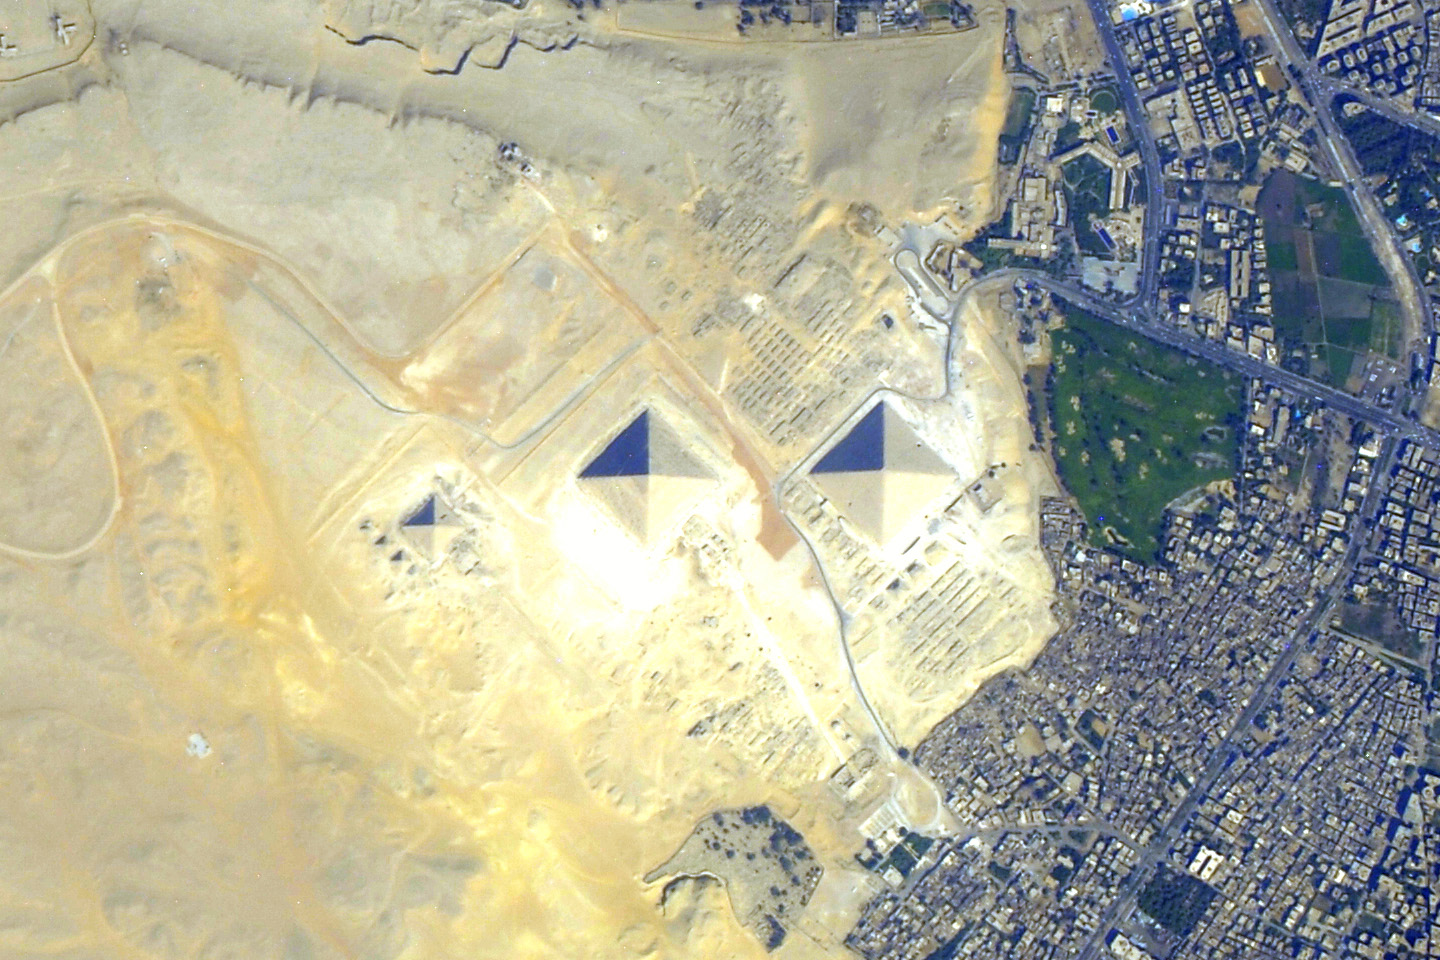 Pyramids In Egypt Map.Pyramids At Giza Egypt